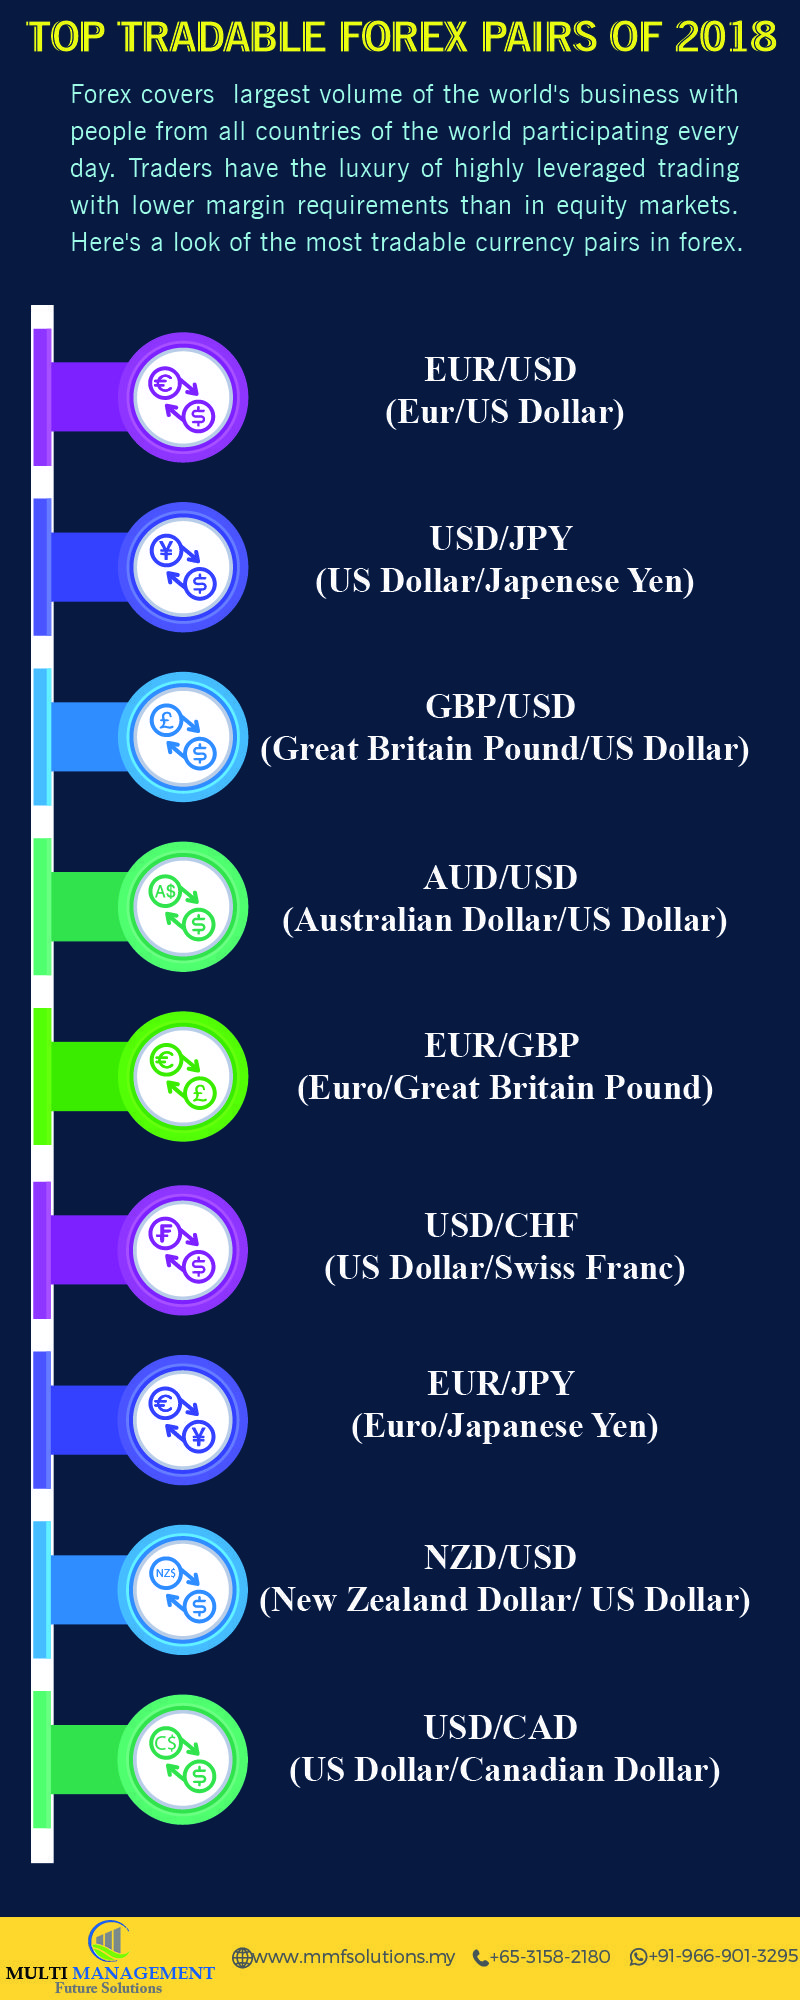 Top Tradable Forex Pairs Of 2018 Forex Forexpairs Currencypairs